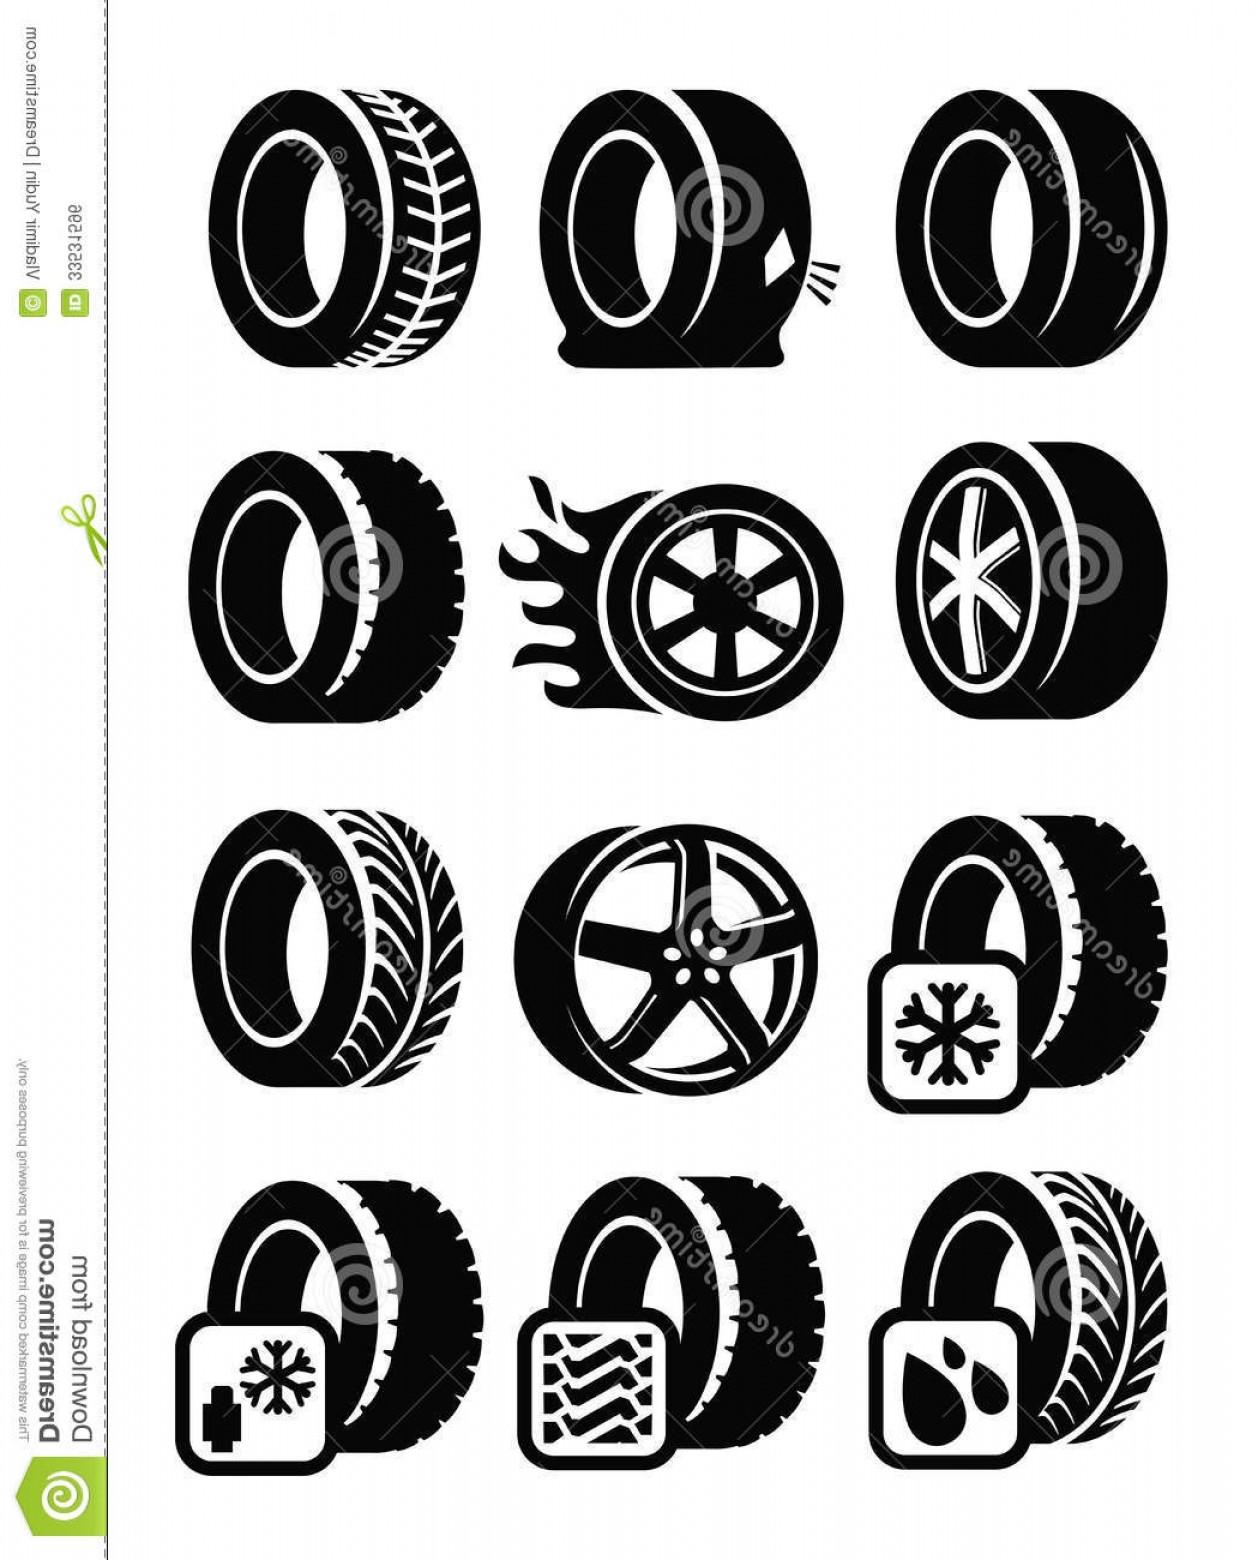 Tire Icon Vector: Royalty Free Stock Image Tyre Icons Vector Black Set Gray Image